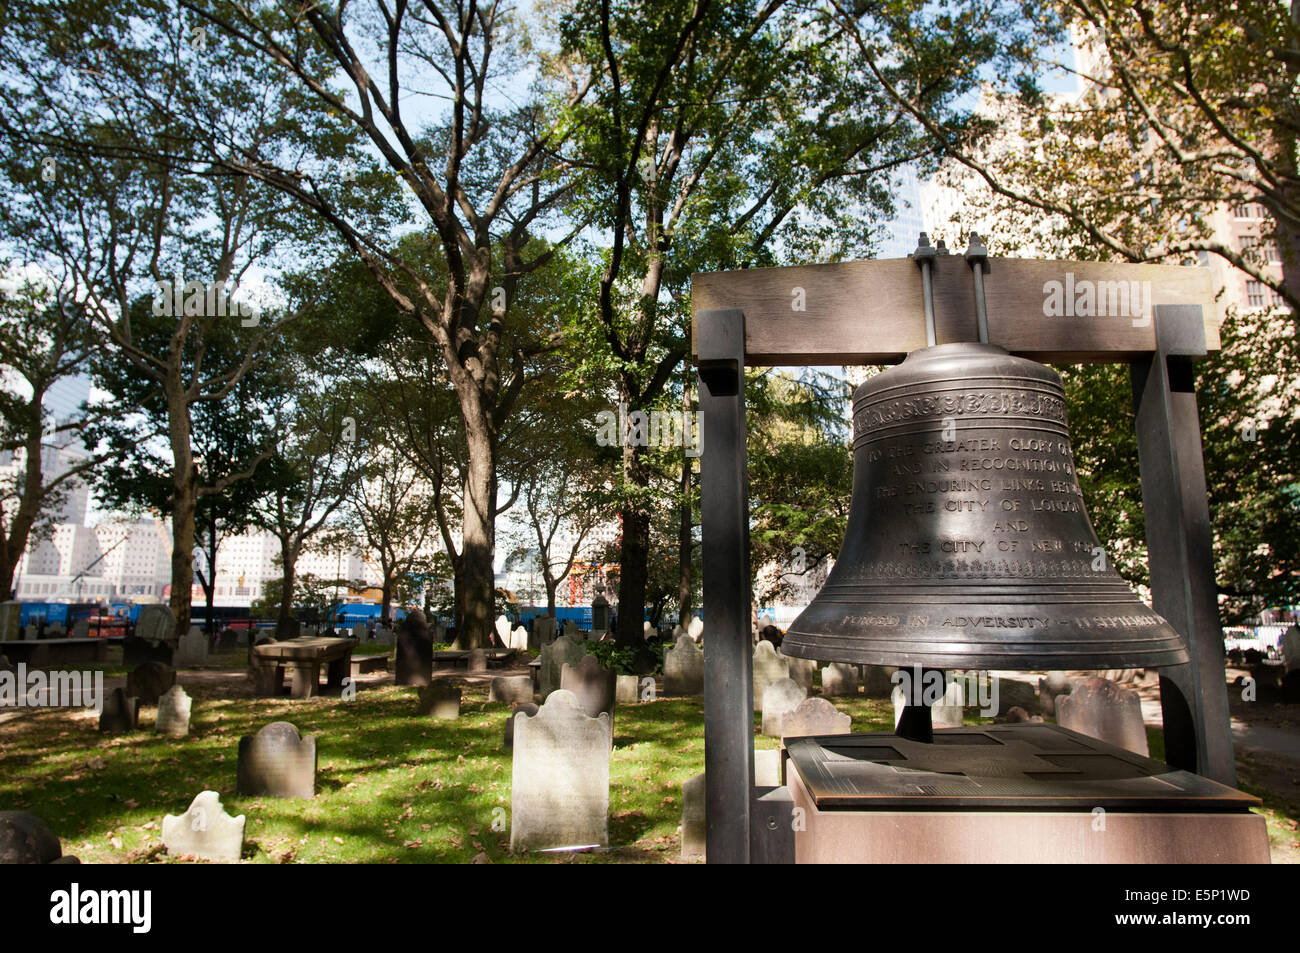 The Bell of Hope at St Paul's Church, World Trade Center, New York, USA. St Paul's chapel, Manhattan, New - Stock Image